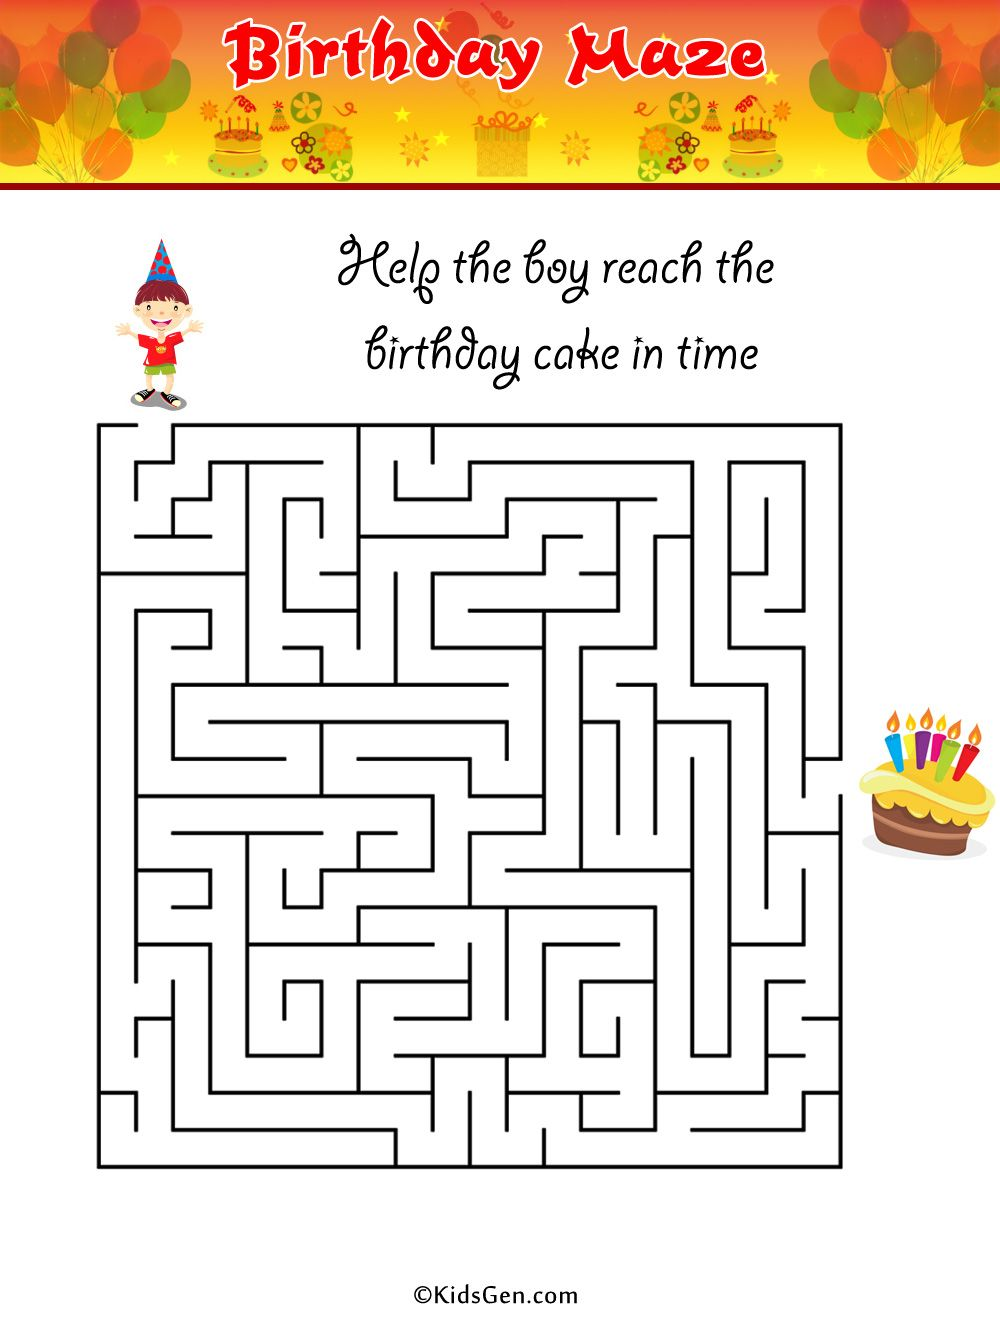 Birthday Maze Colouring Pages Colouring Pages Maze Printable Coloring Pages